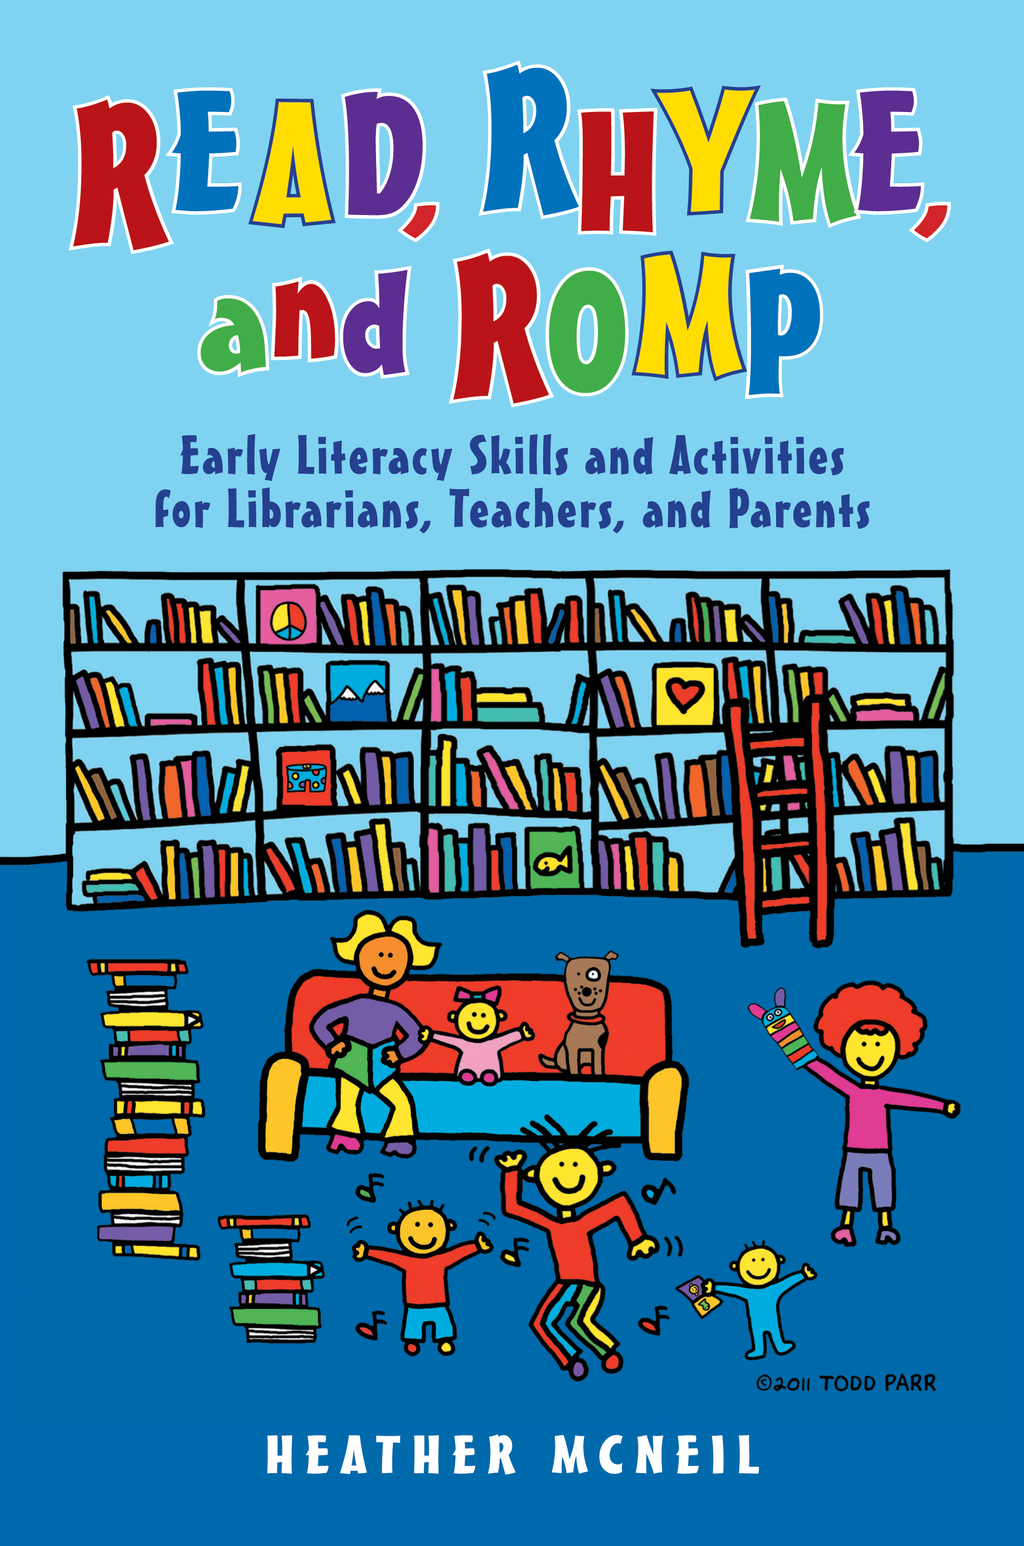 Read, Rhyme, and Romp: Early Literacy Skills and Activities for Librarians, Teachers, and Parents By: Heather McNeil